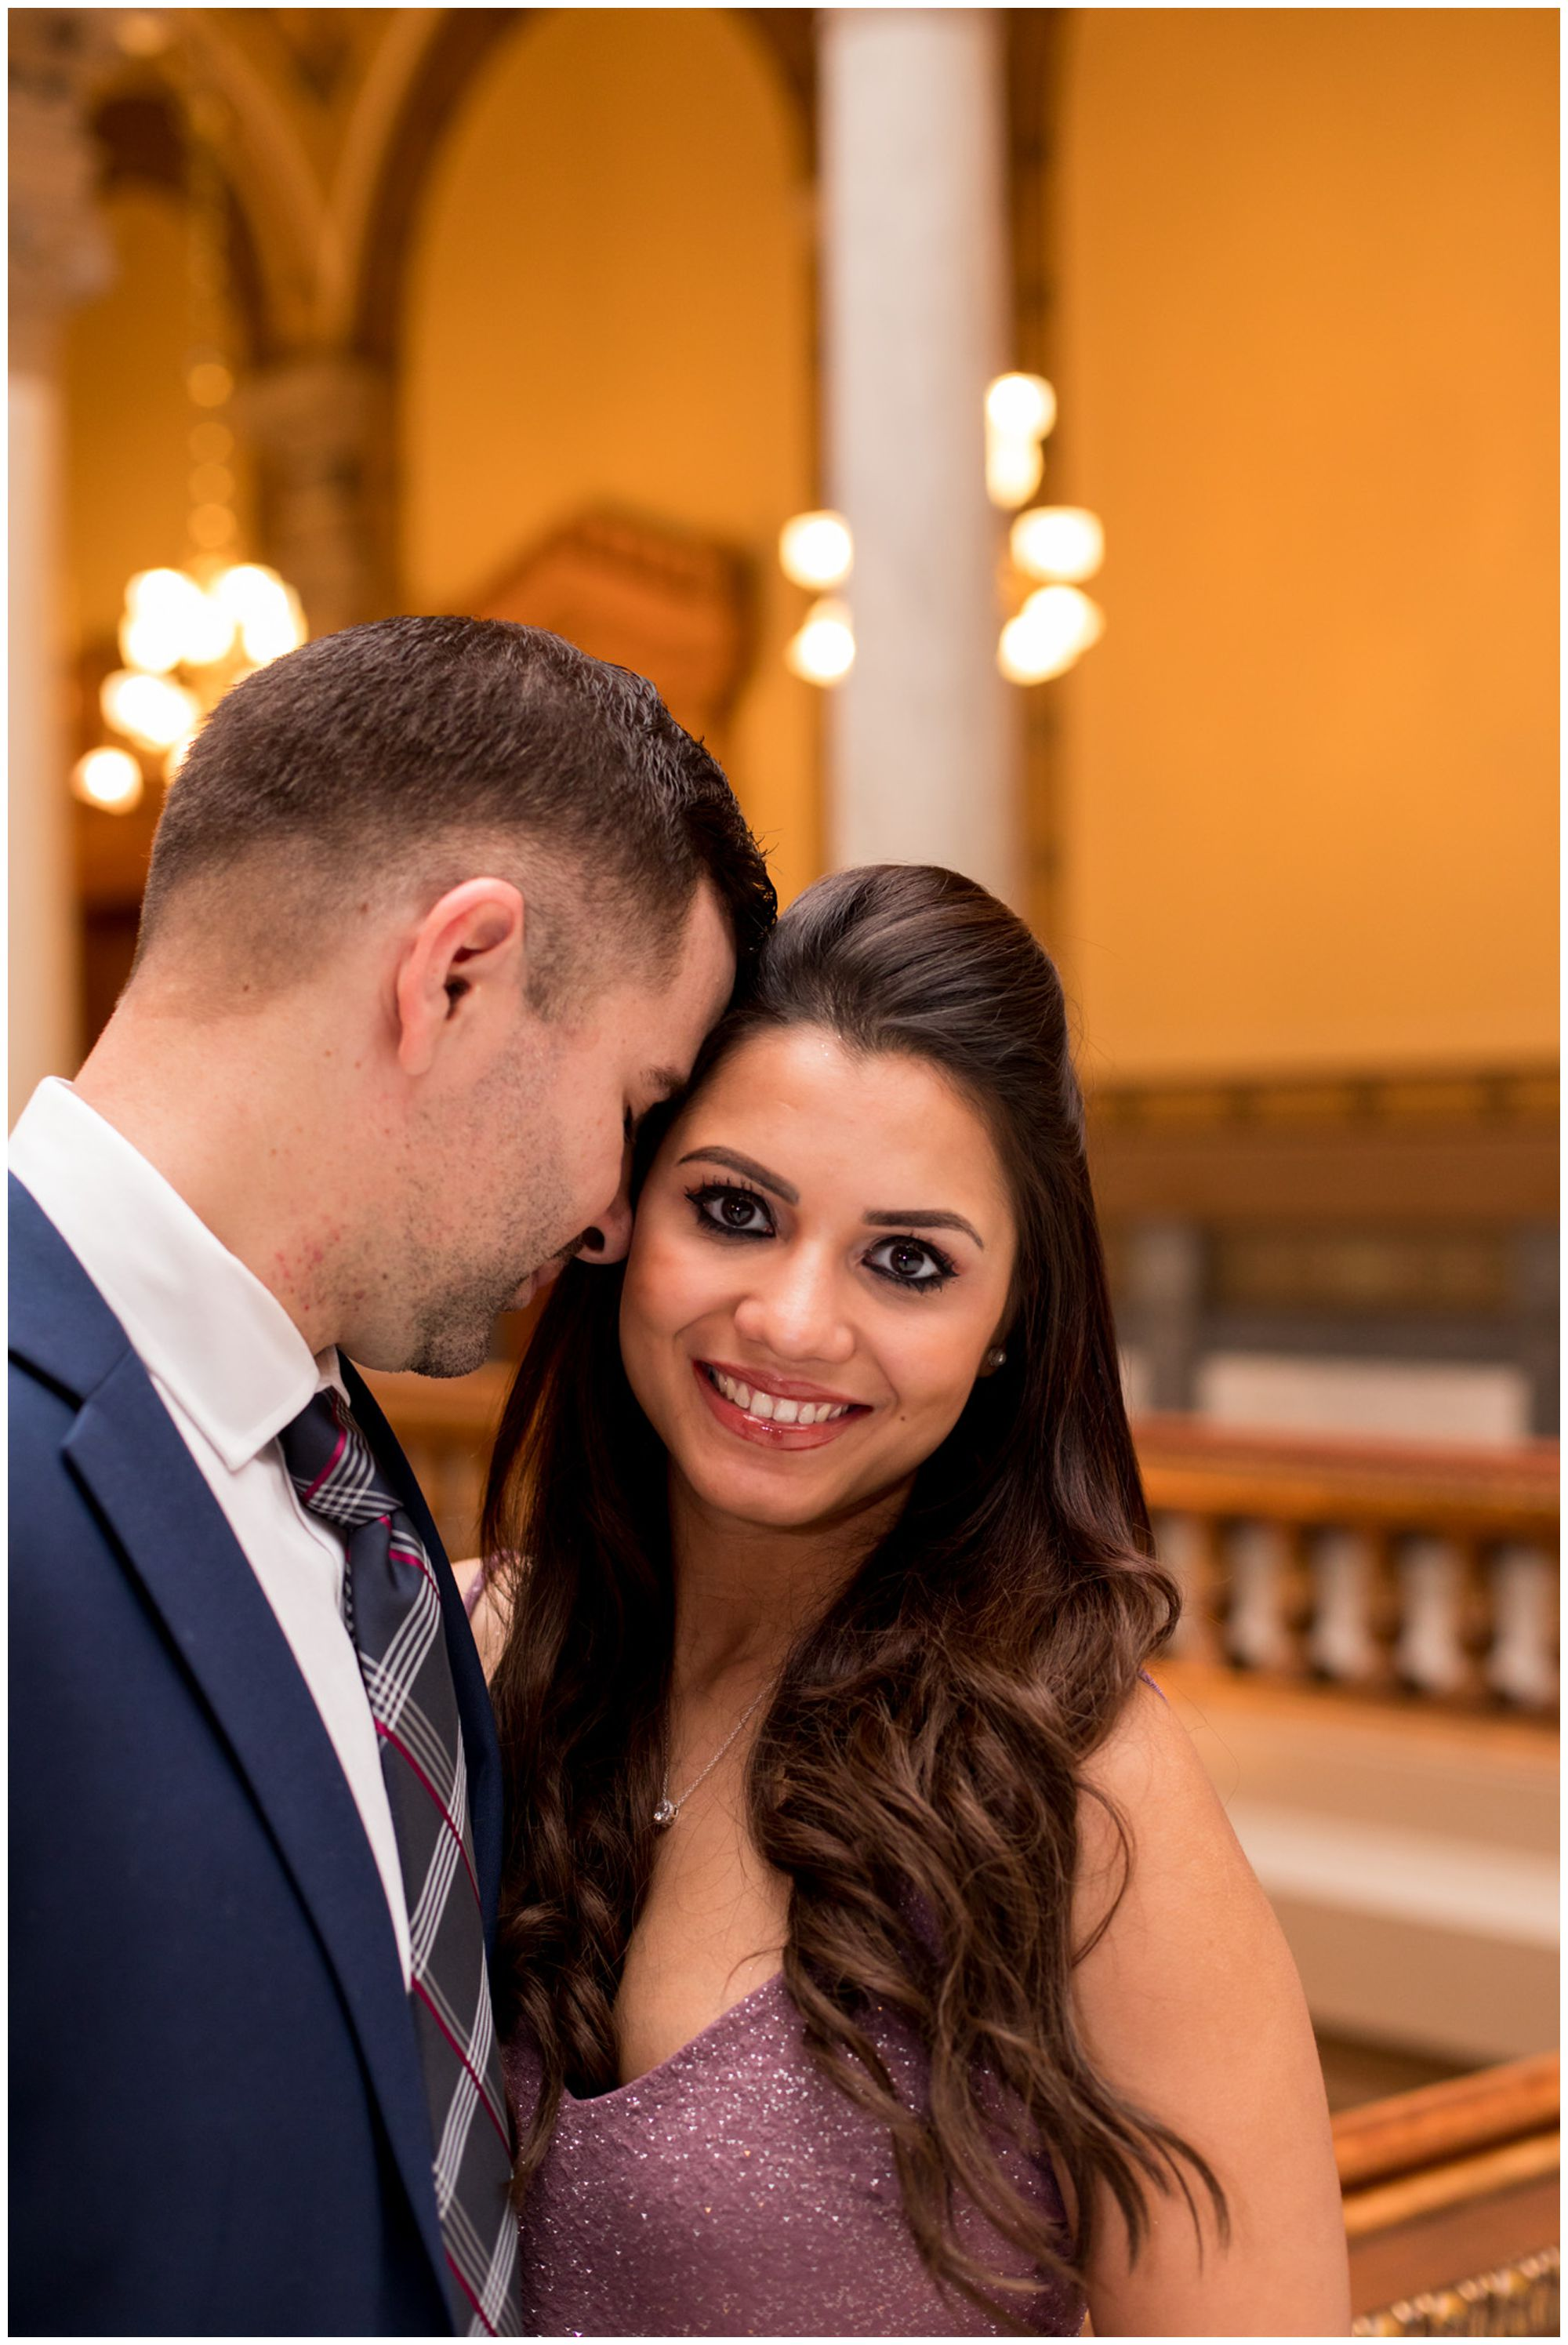 bride looks at camera during couples portraits after elopement ceremony at Indiana Statehouse